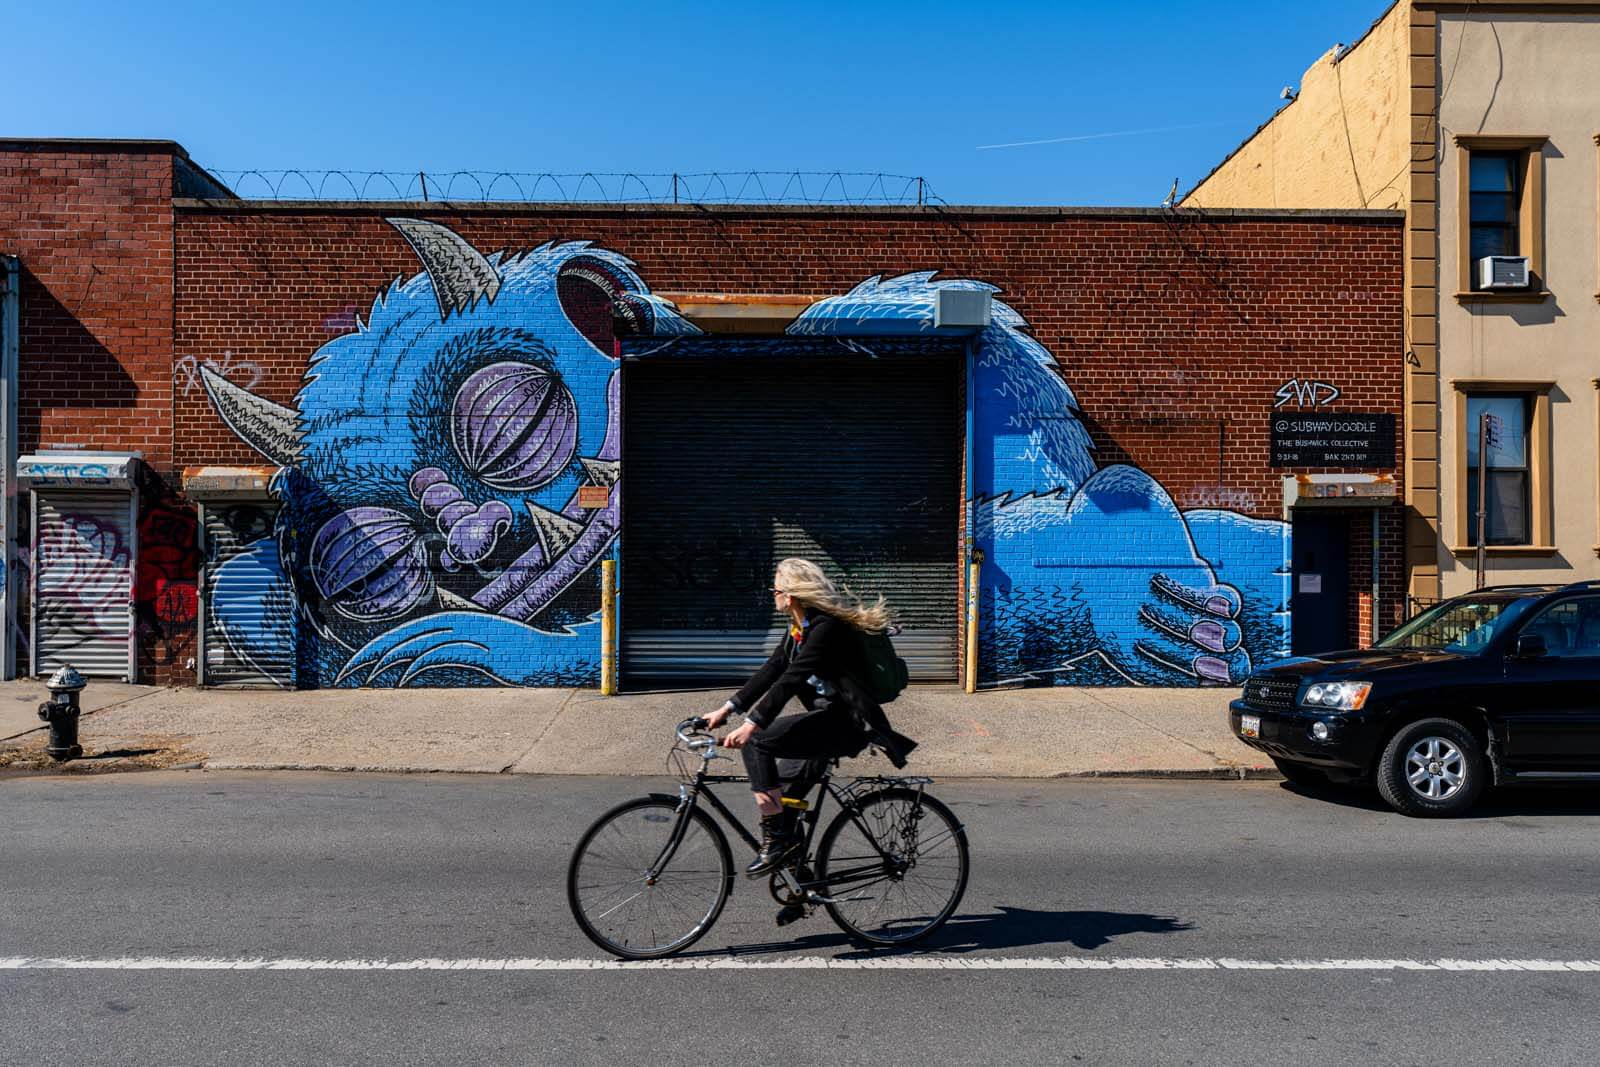 sleeping monster in Bushwick Brooklyn mural and cyclist